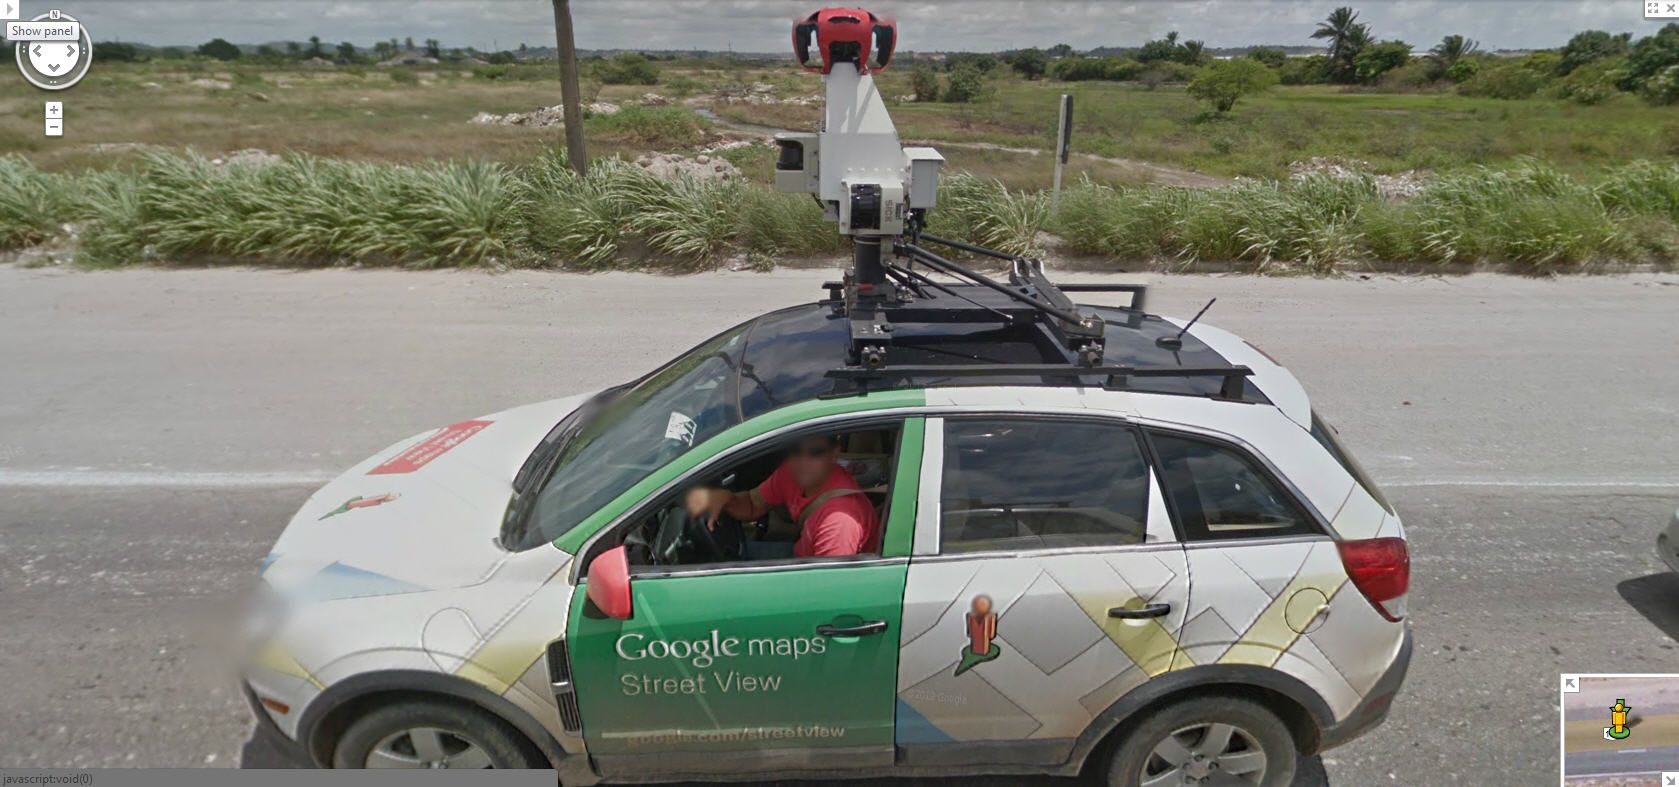 Another awesome picture of the Google Street View driver and car on on